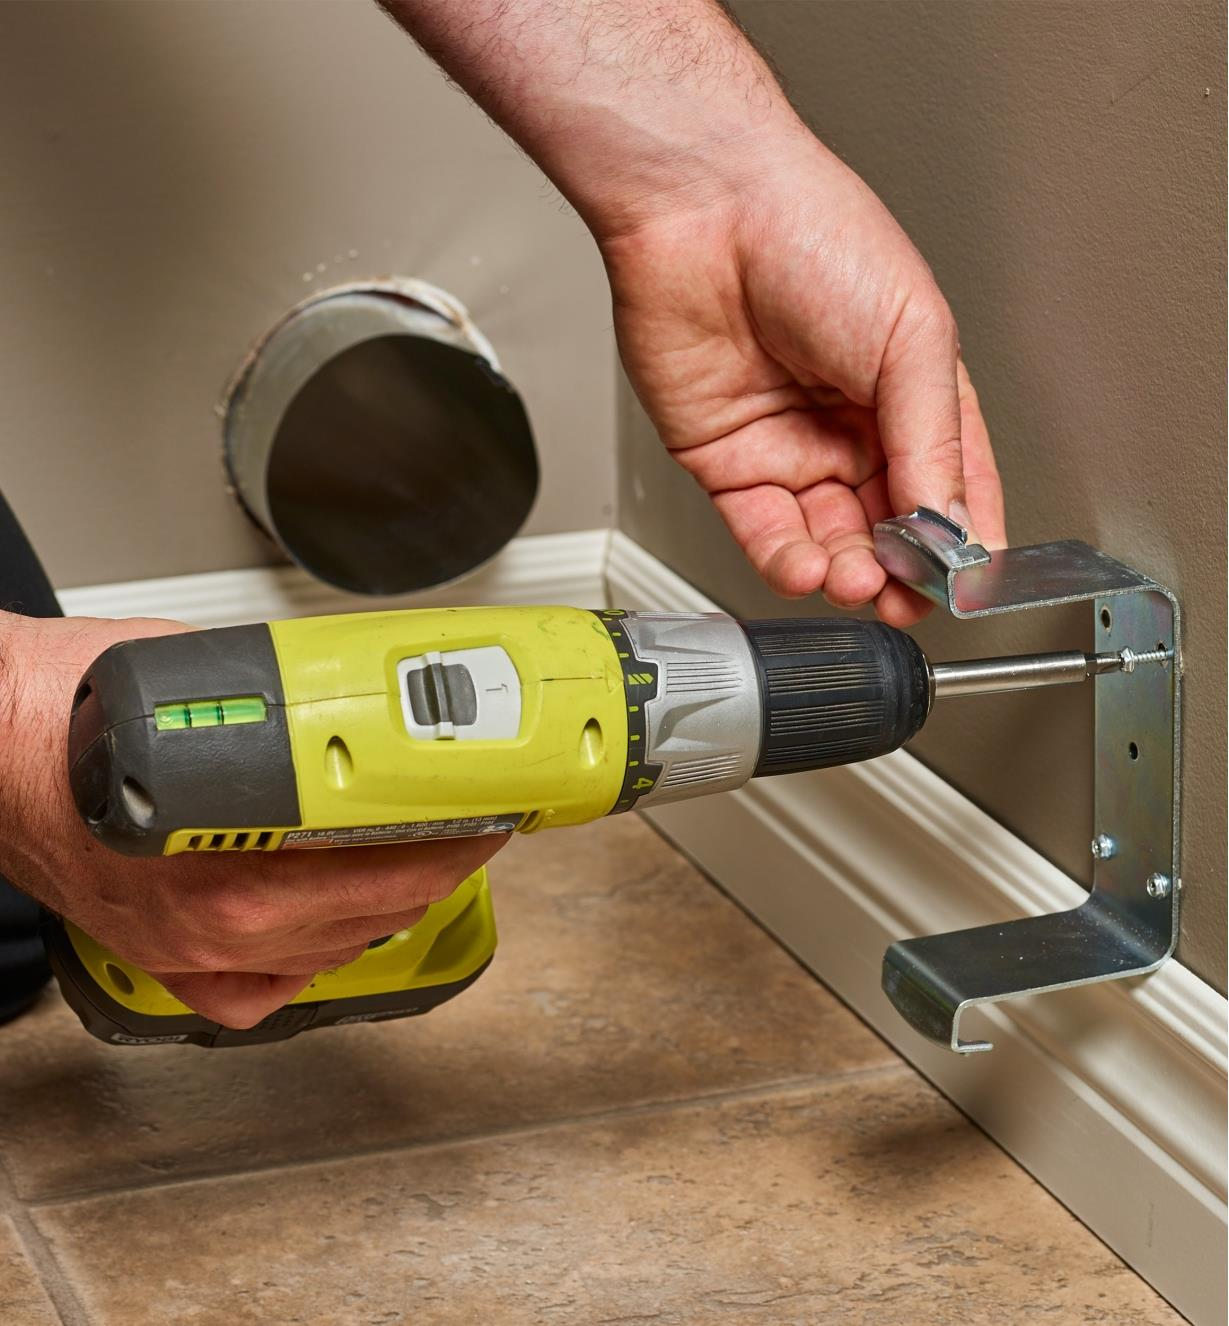 Attaching the bracket to the wall using a power drill